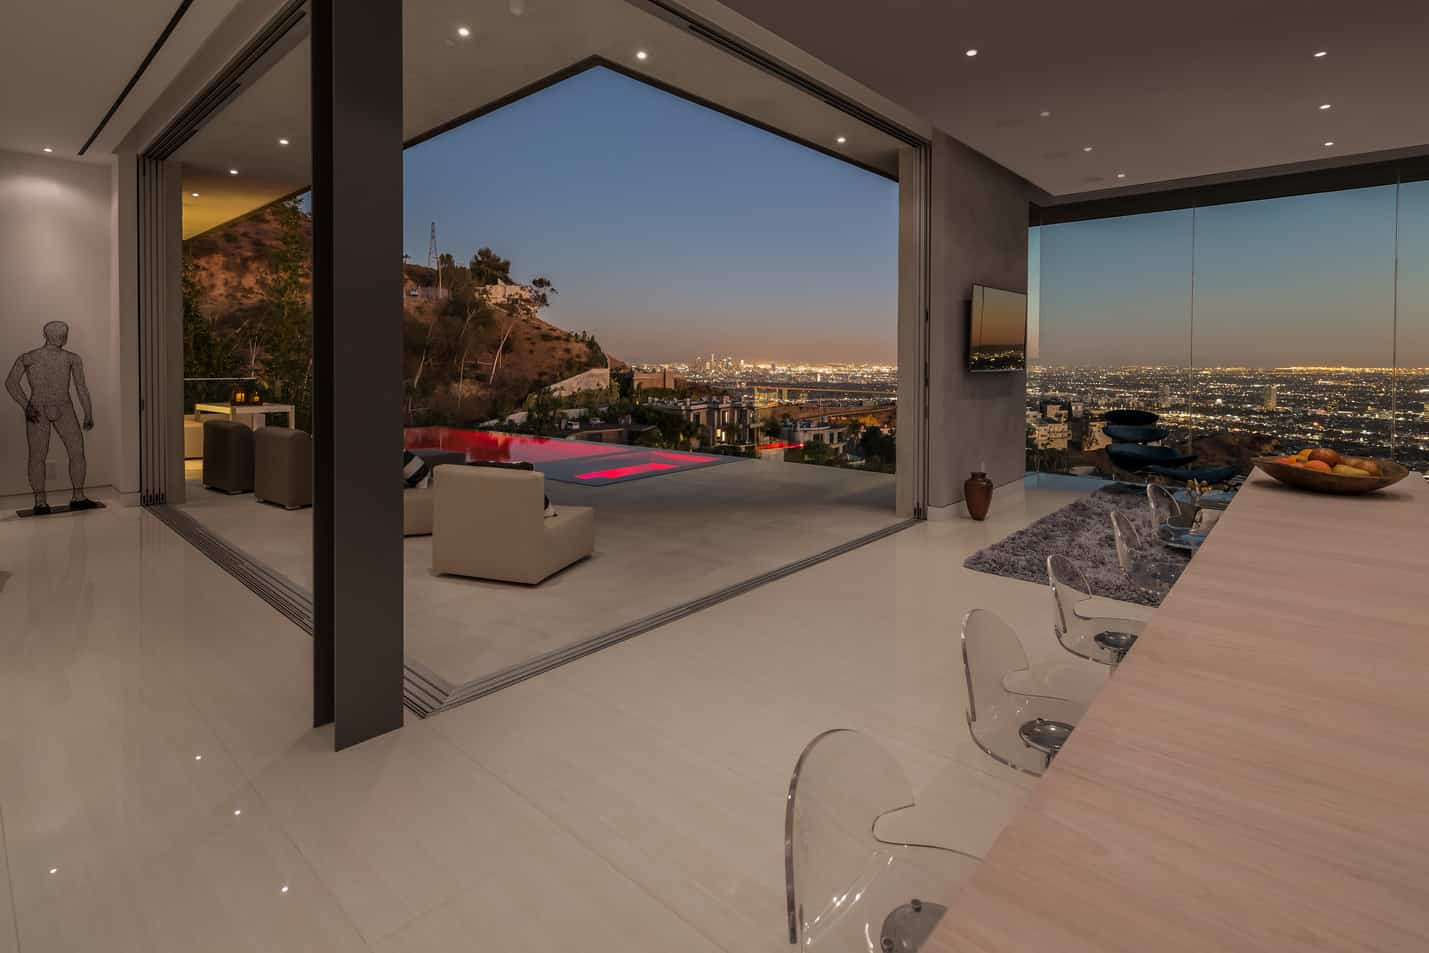 Architecture-Contemporary-Residence-Noesis Group-10-1 Kindesign